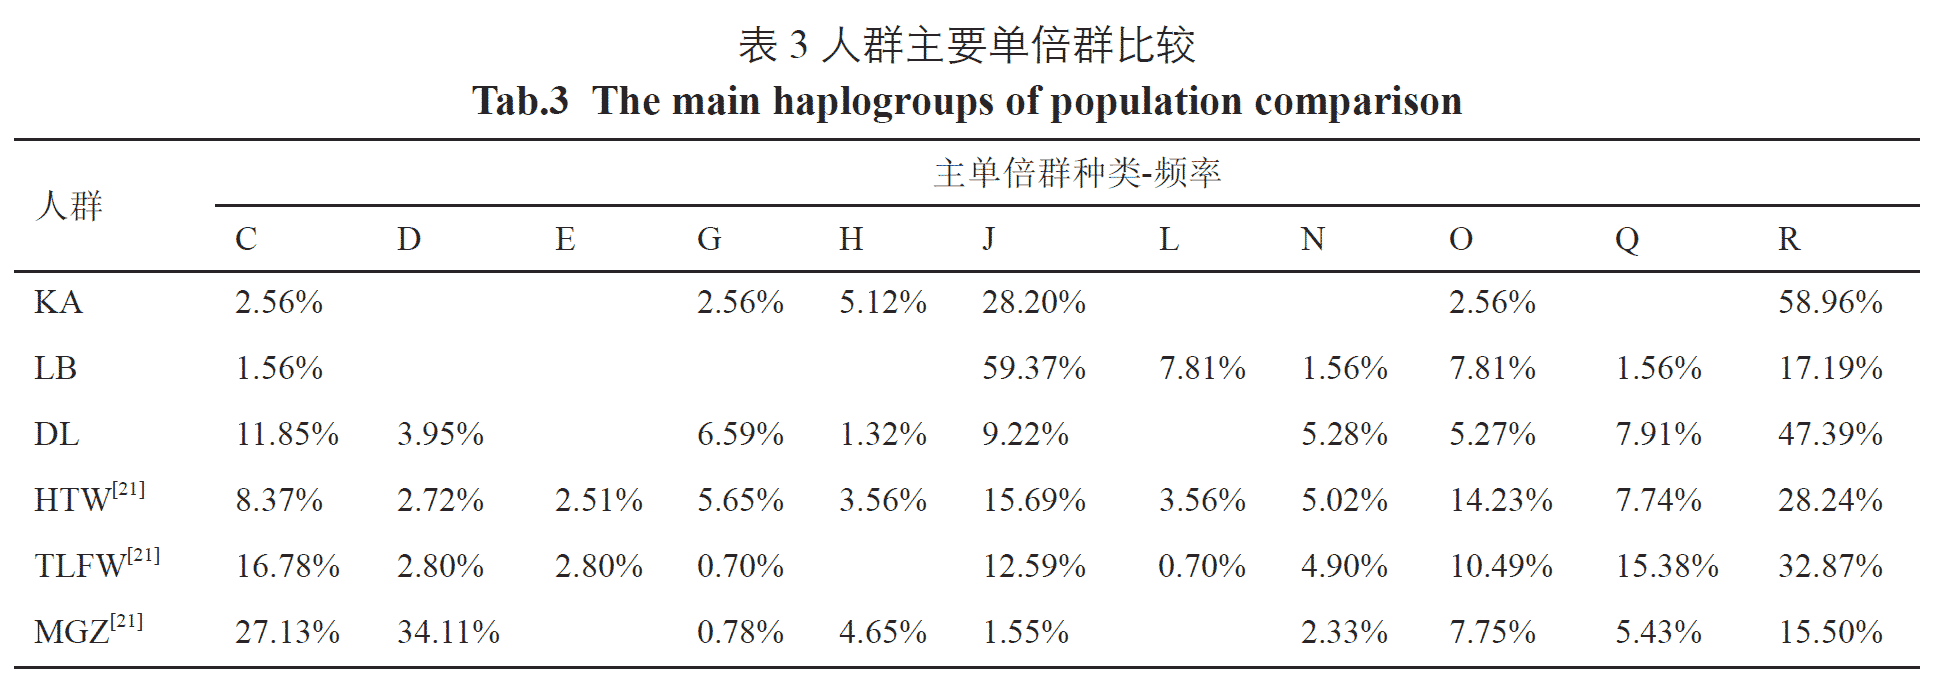 main-haplogroup-uighur